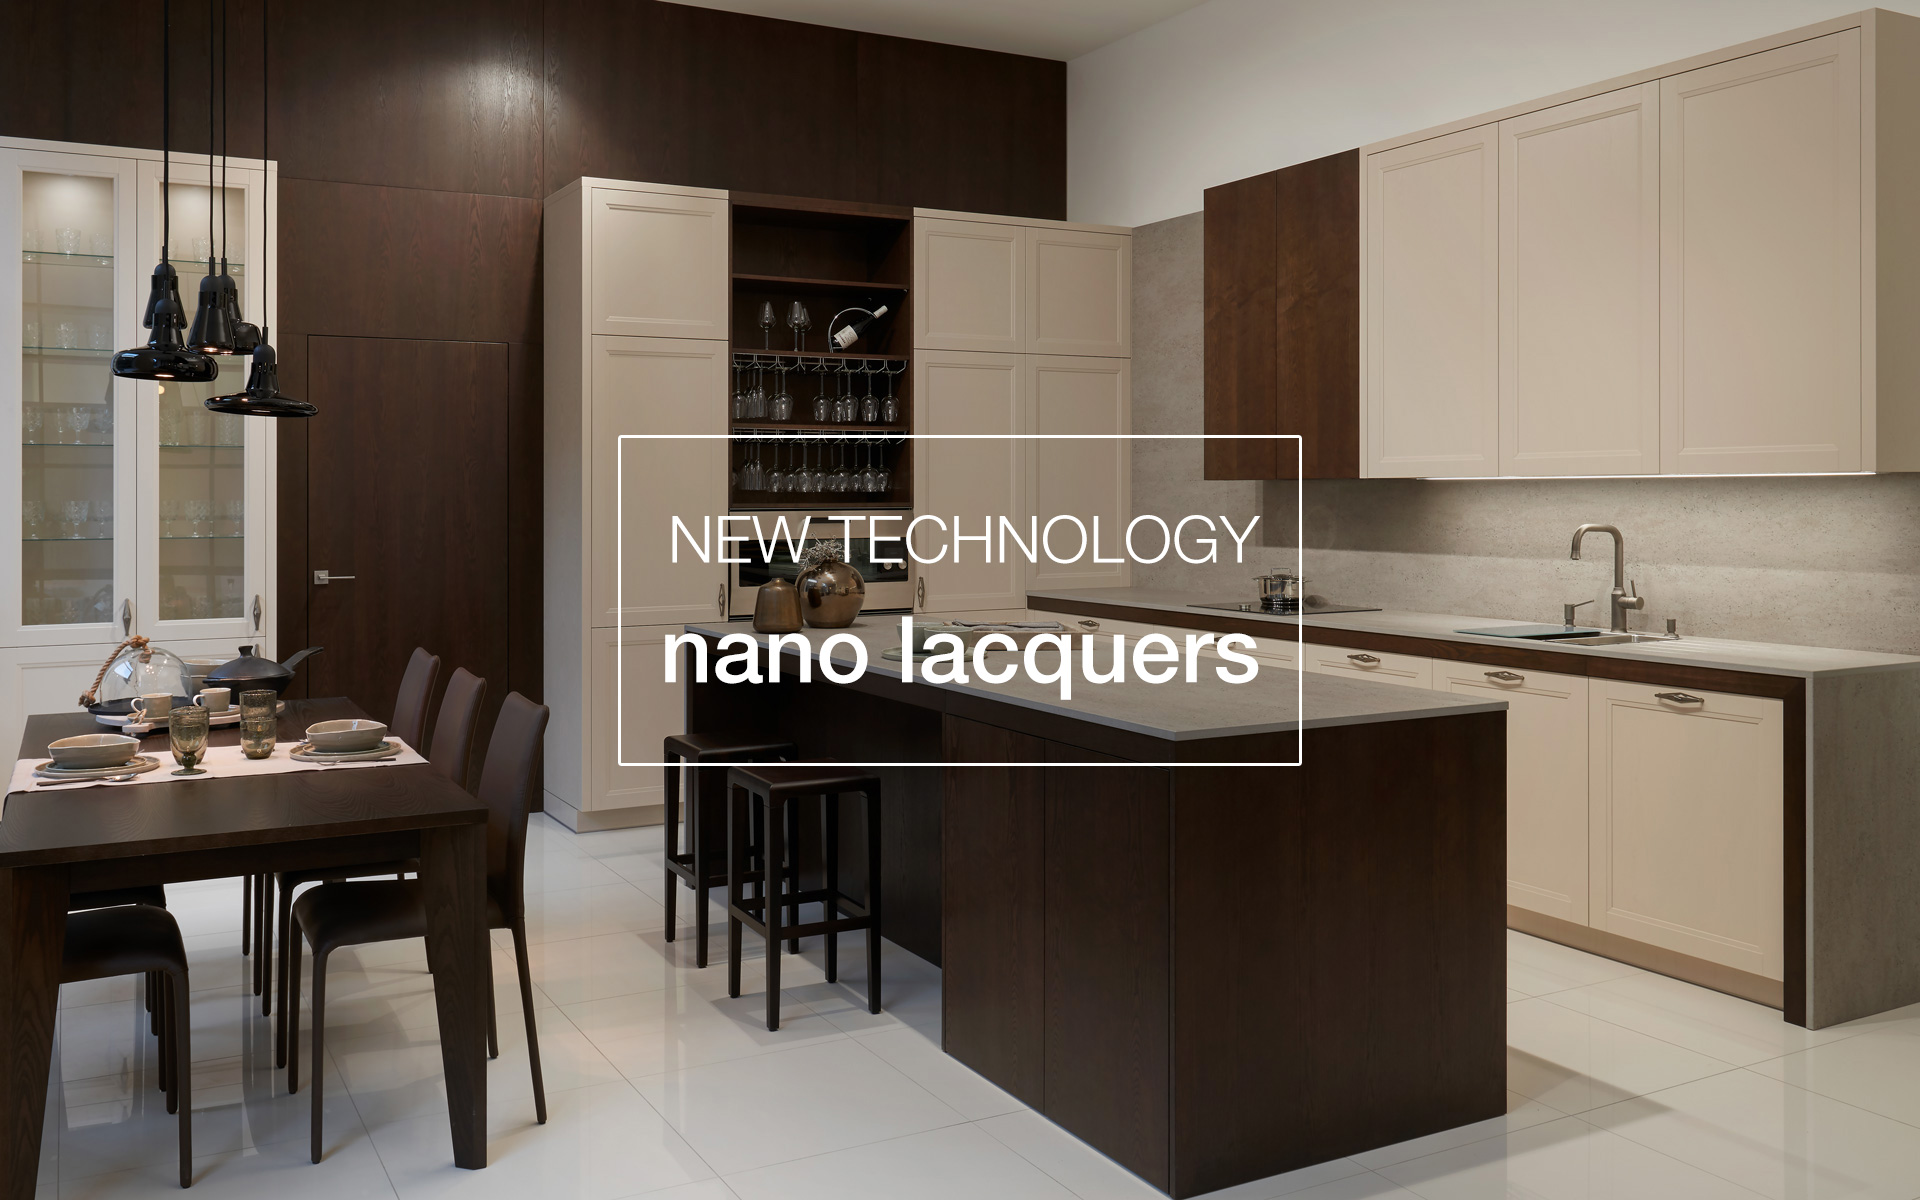 We are first again! We introduced the most advanced technology of lacquering – nano lacquers.